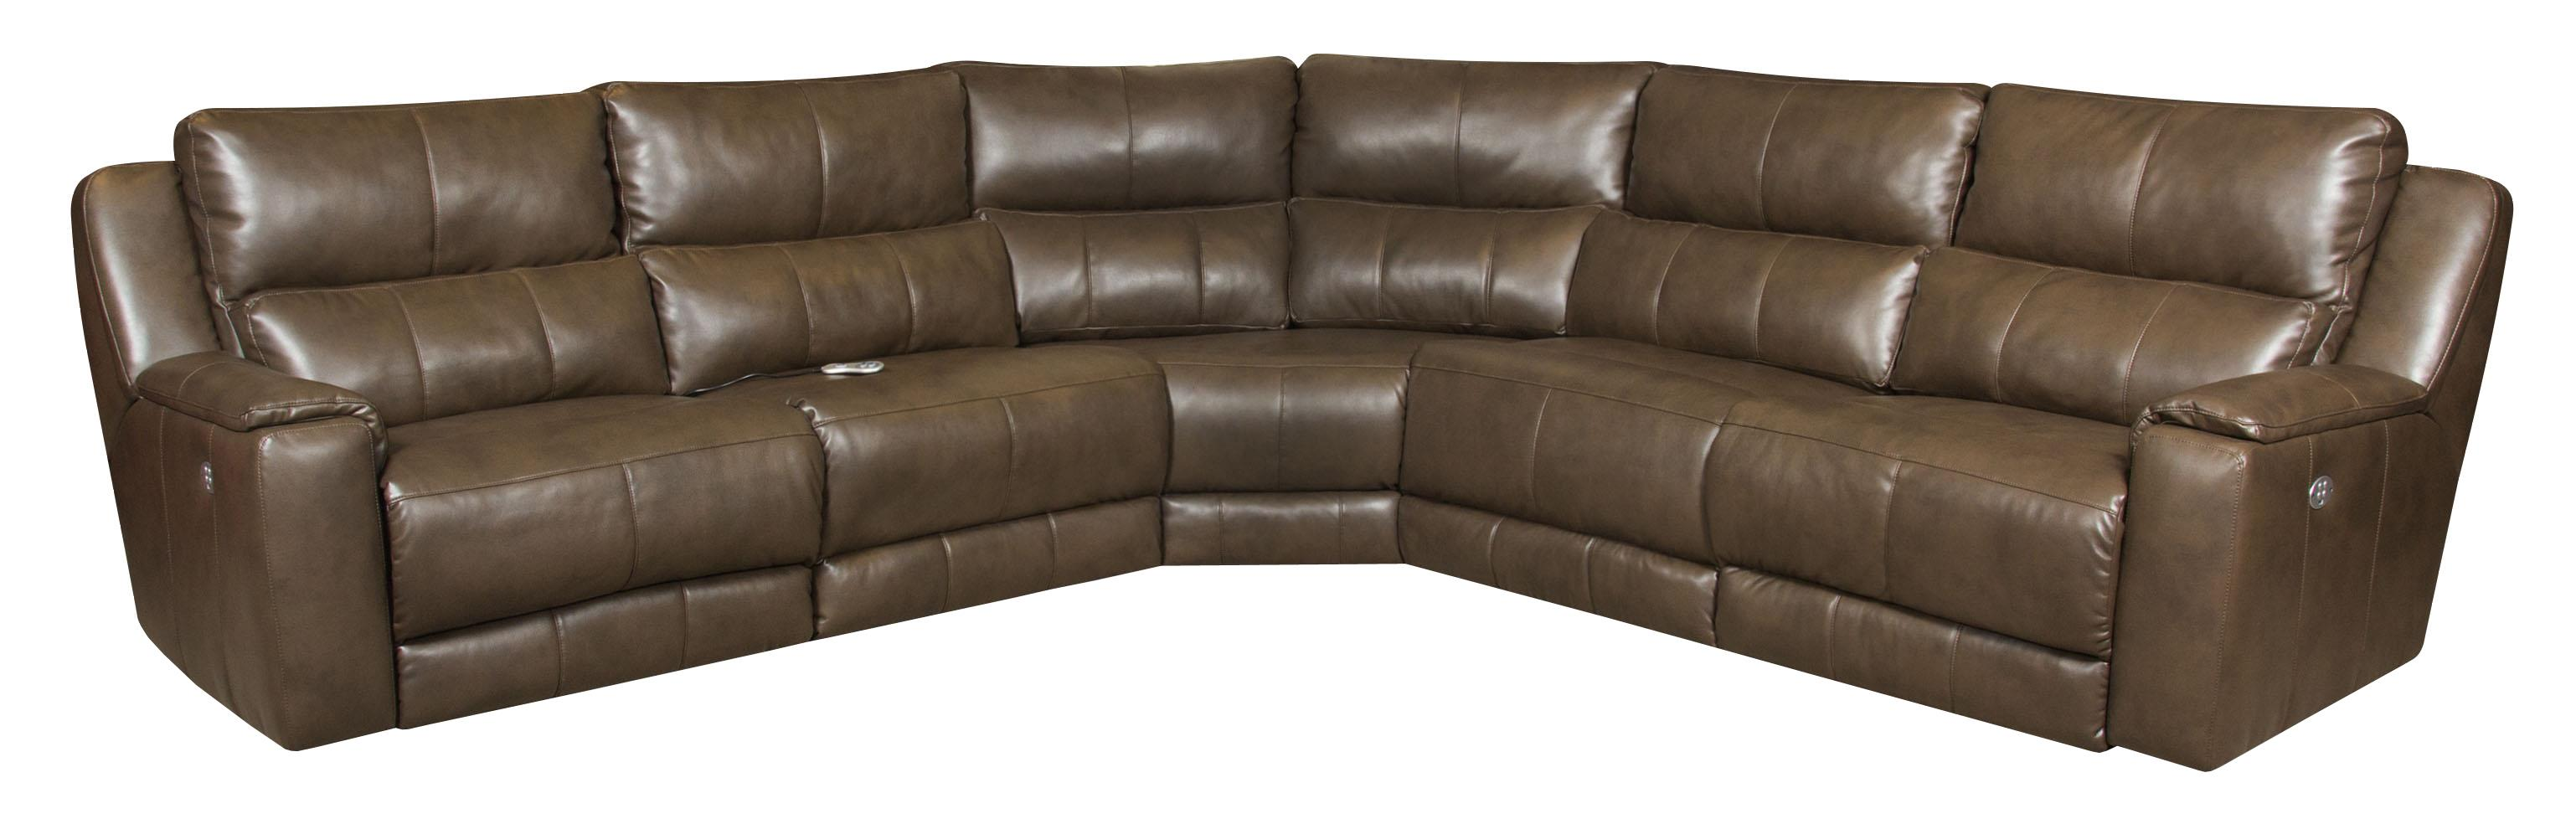 sofa southern motion www ethlen com sofas dazzle reclining sectional with 5